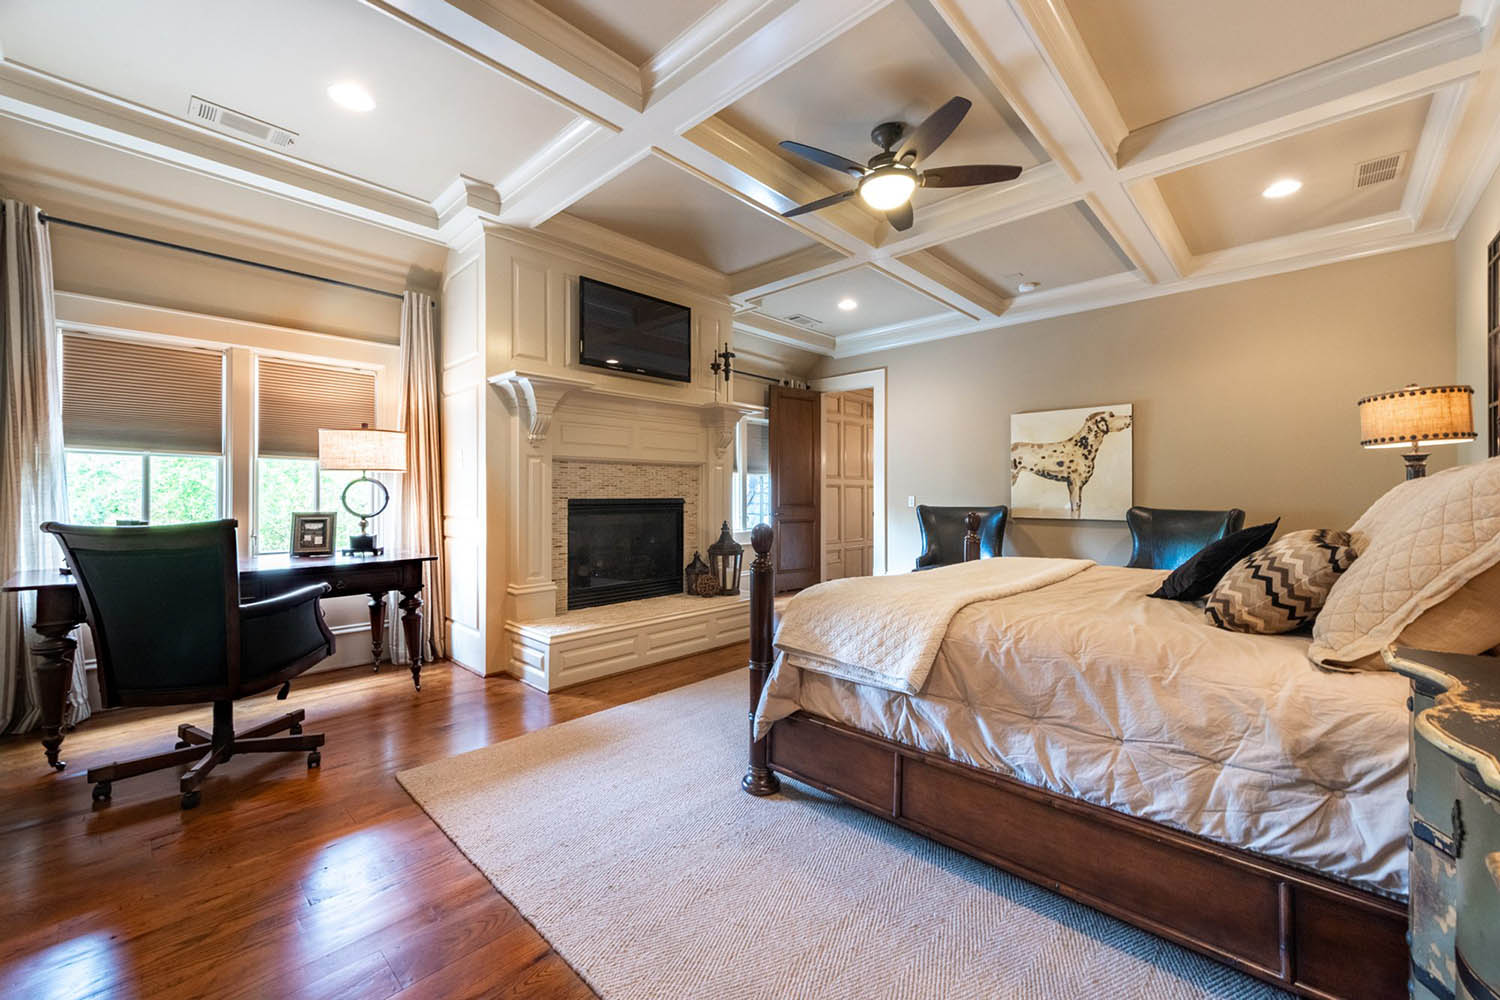 Master bedroom coffered ceiling with white beams and tan coffers. Gas fireplace with tile and wood surround.